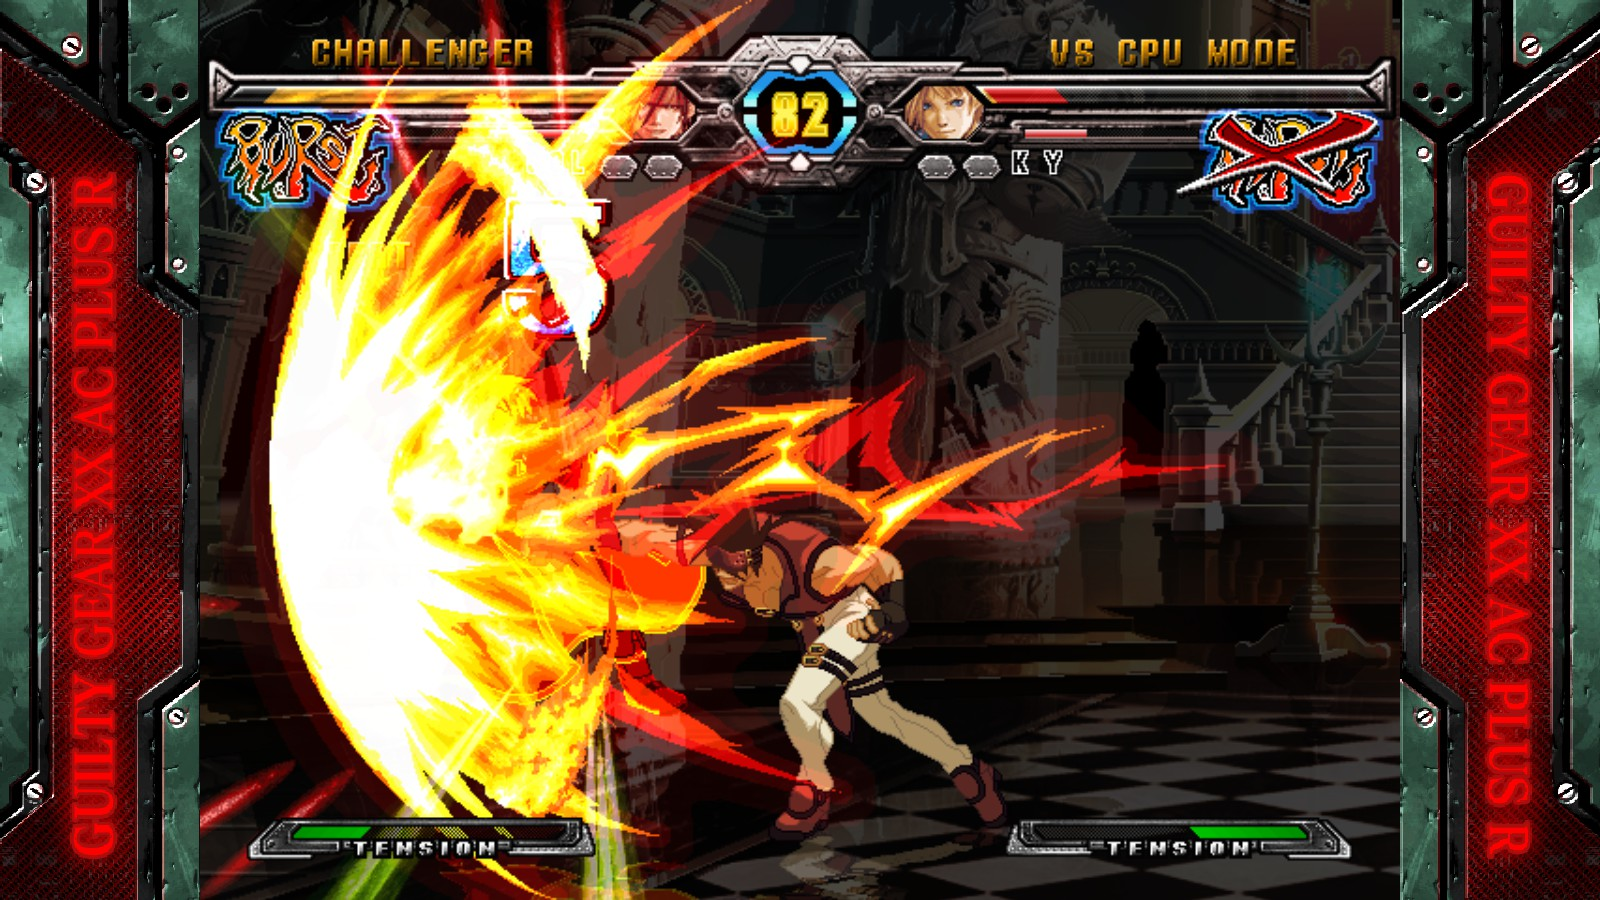 Guilty Gear XX Accent Core Plus R image 1